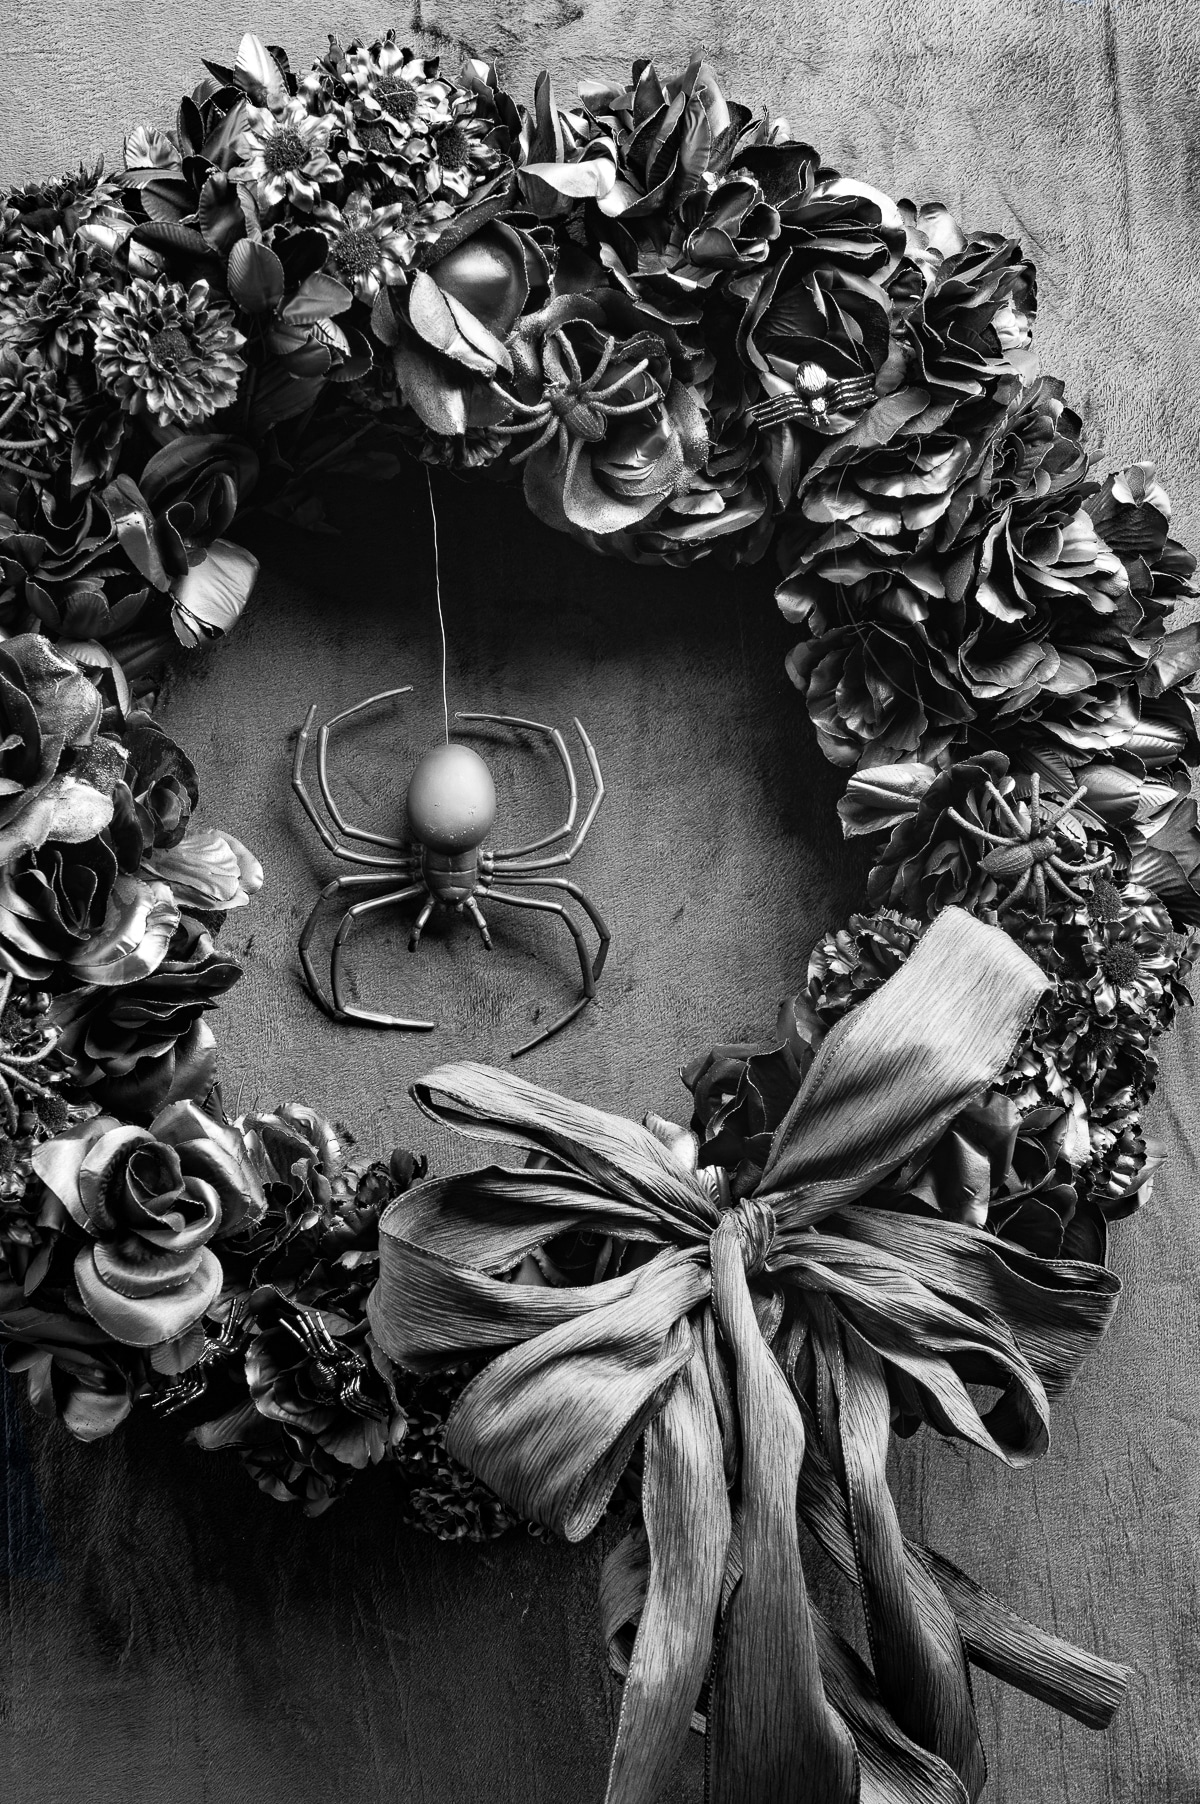 A floral all  black halloween wreath with black bow, and large plastic spider hanging in the centre.  The Wreath is hung on a black velvet background.